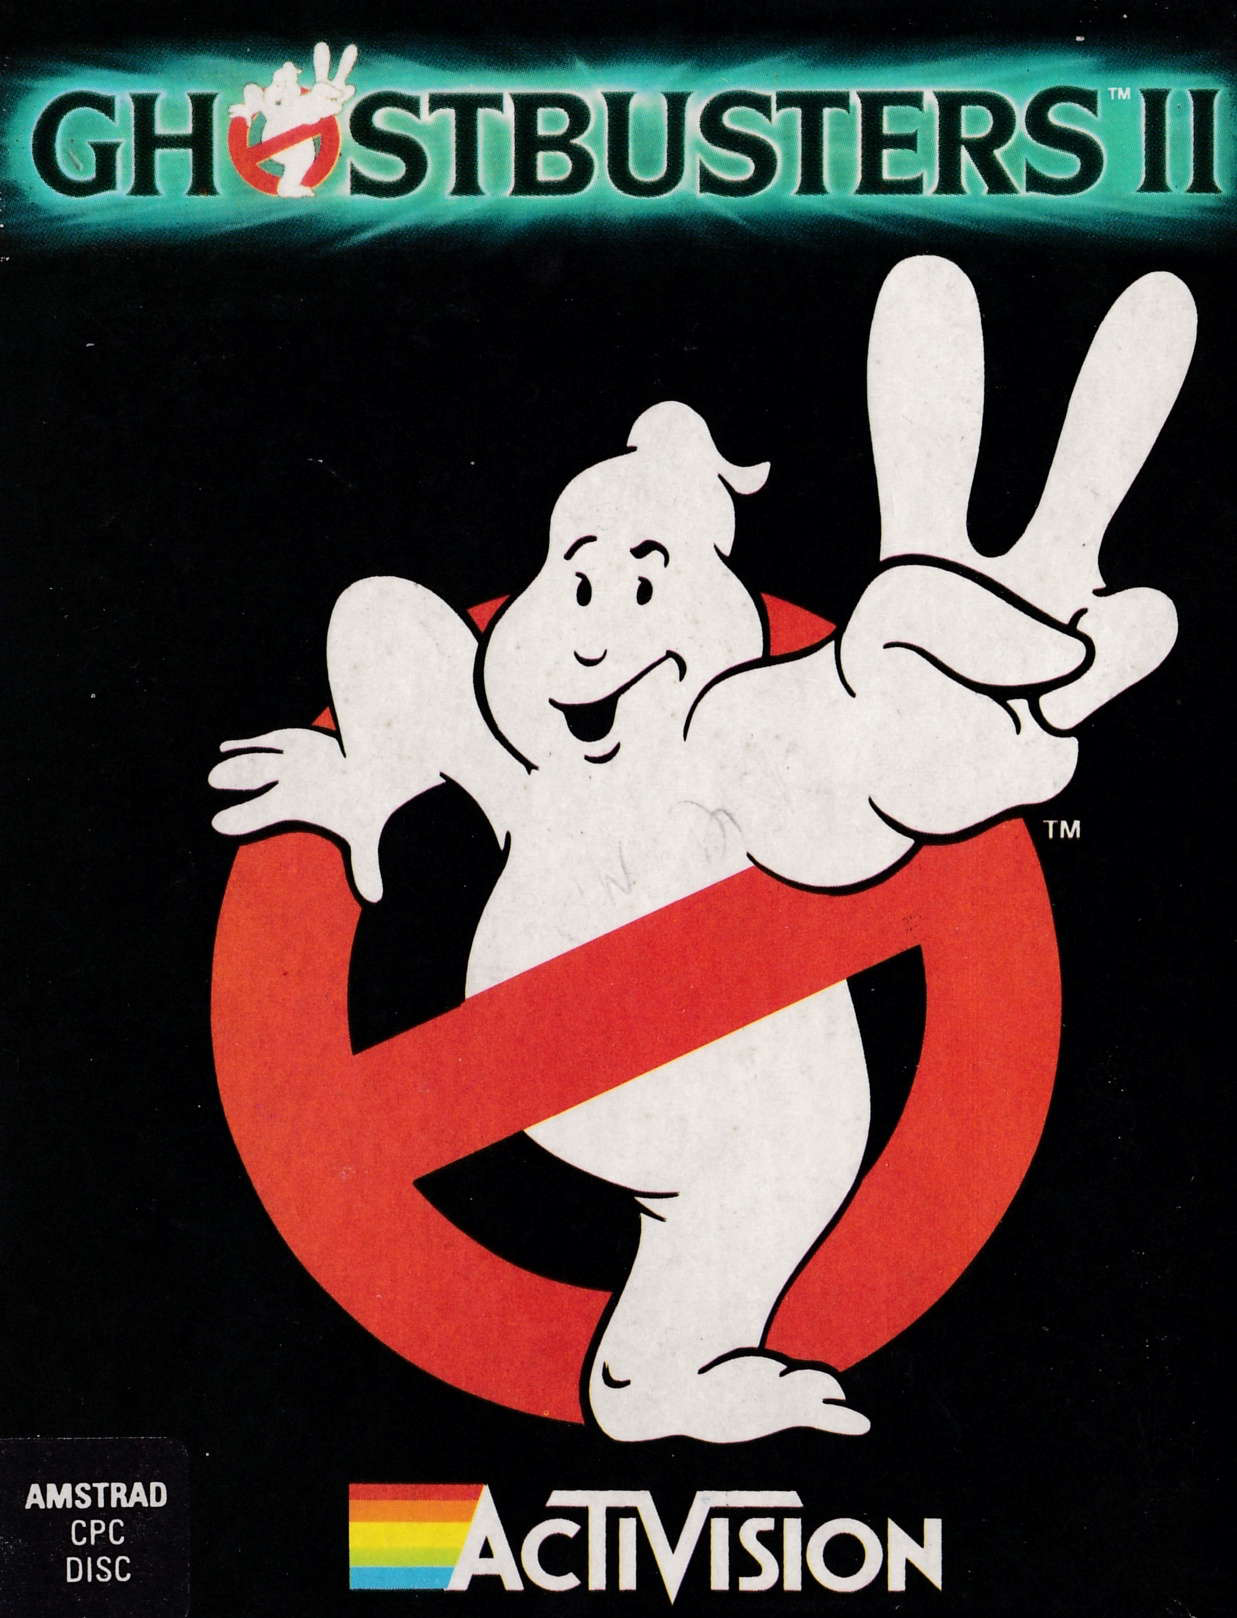 cover of the Amstrad CPC game Ghostbusters II  by GameBase CPC